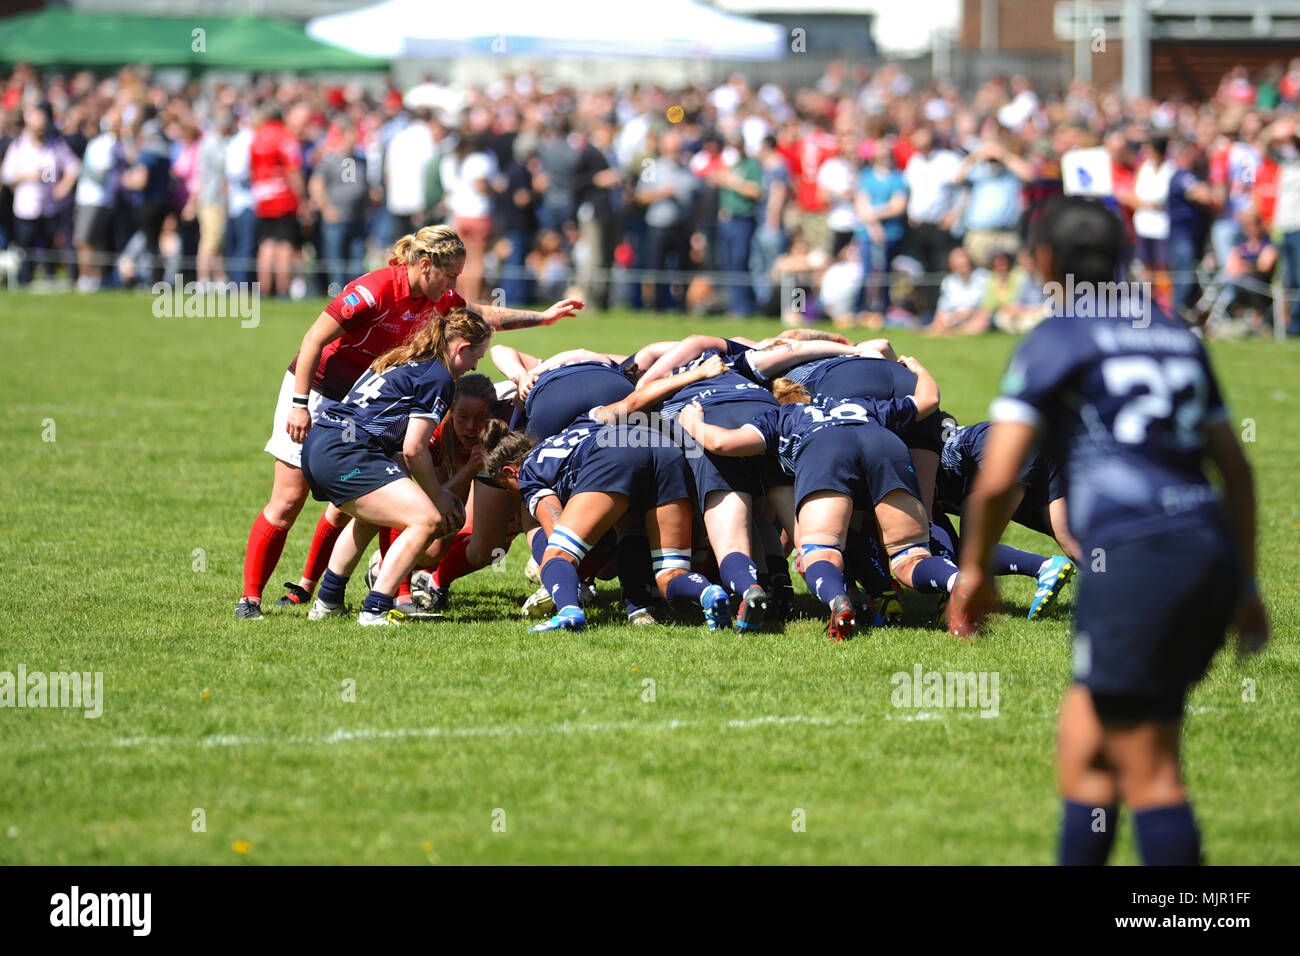 London, UK, 5 May 2018. Royal Navy and British Army players locked into a scrum during the annual women's annual inter-service competition match at Kneller Hall, London, UK.  The match was won by the British Army, 72-3.    In 2003 a Women's Inter-Service Competition was introduced to run alongside the men's competition. The inaugural competition was won by the Army and since its inception they'v Credit: Michael Preston/Alamy Live News - Stock Image